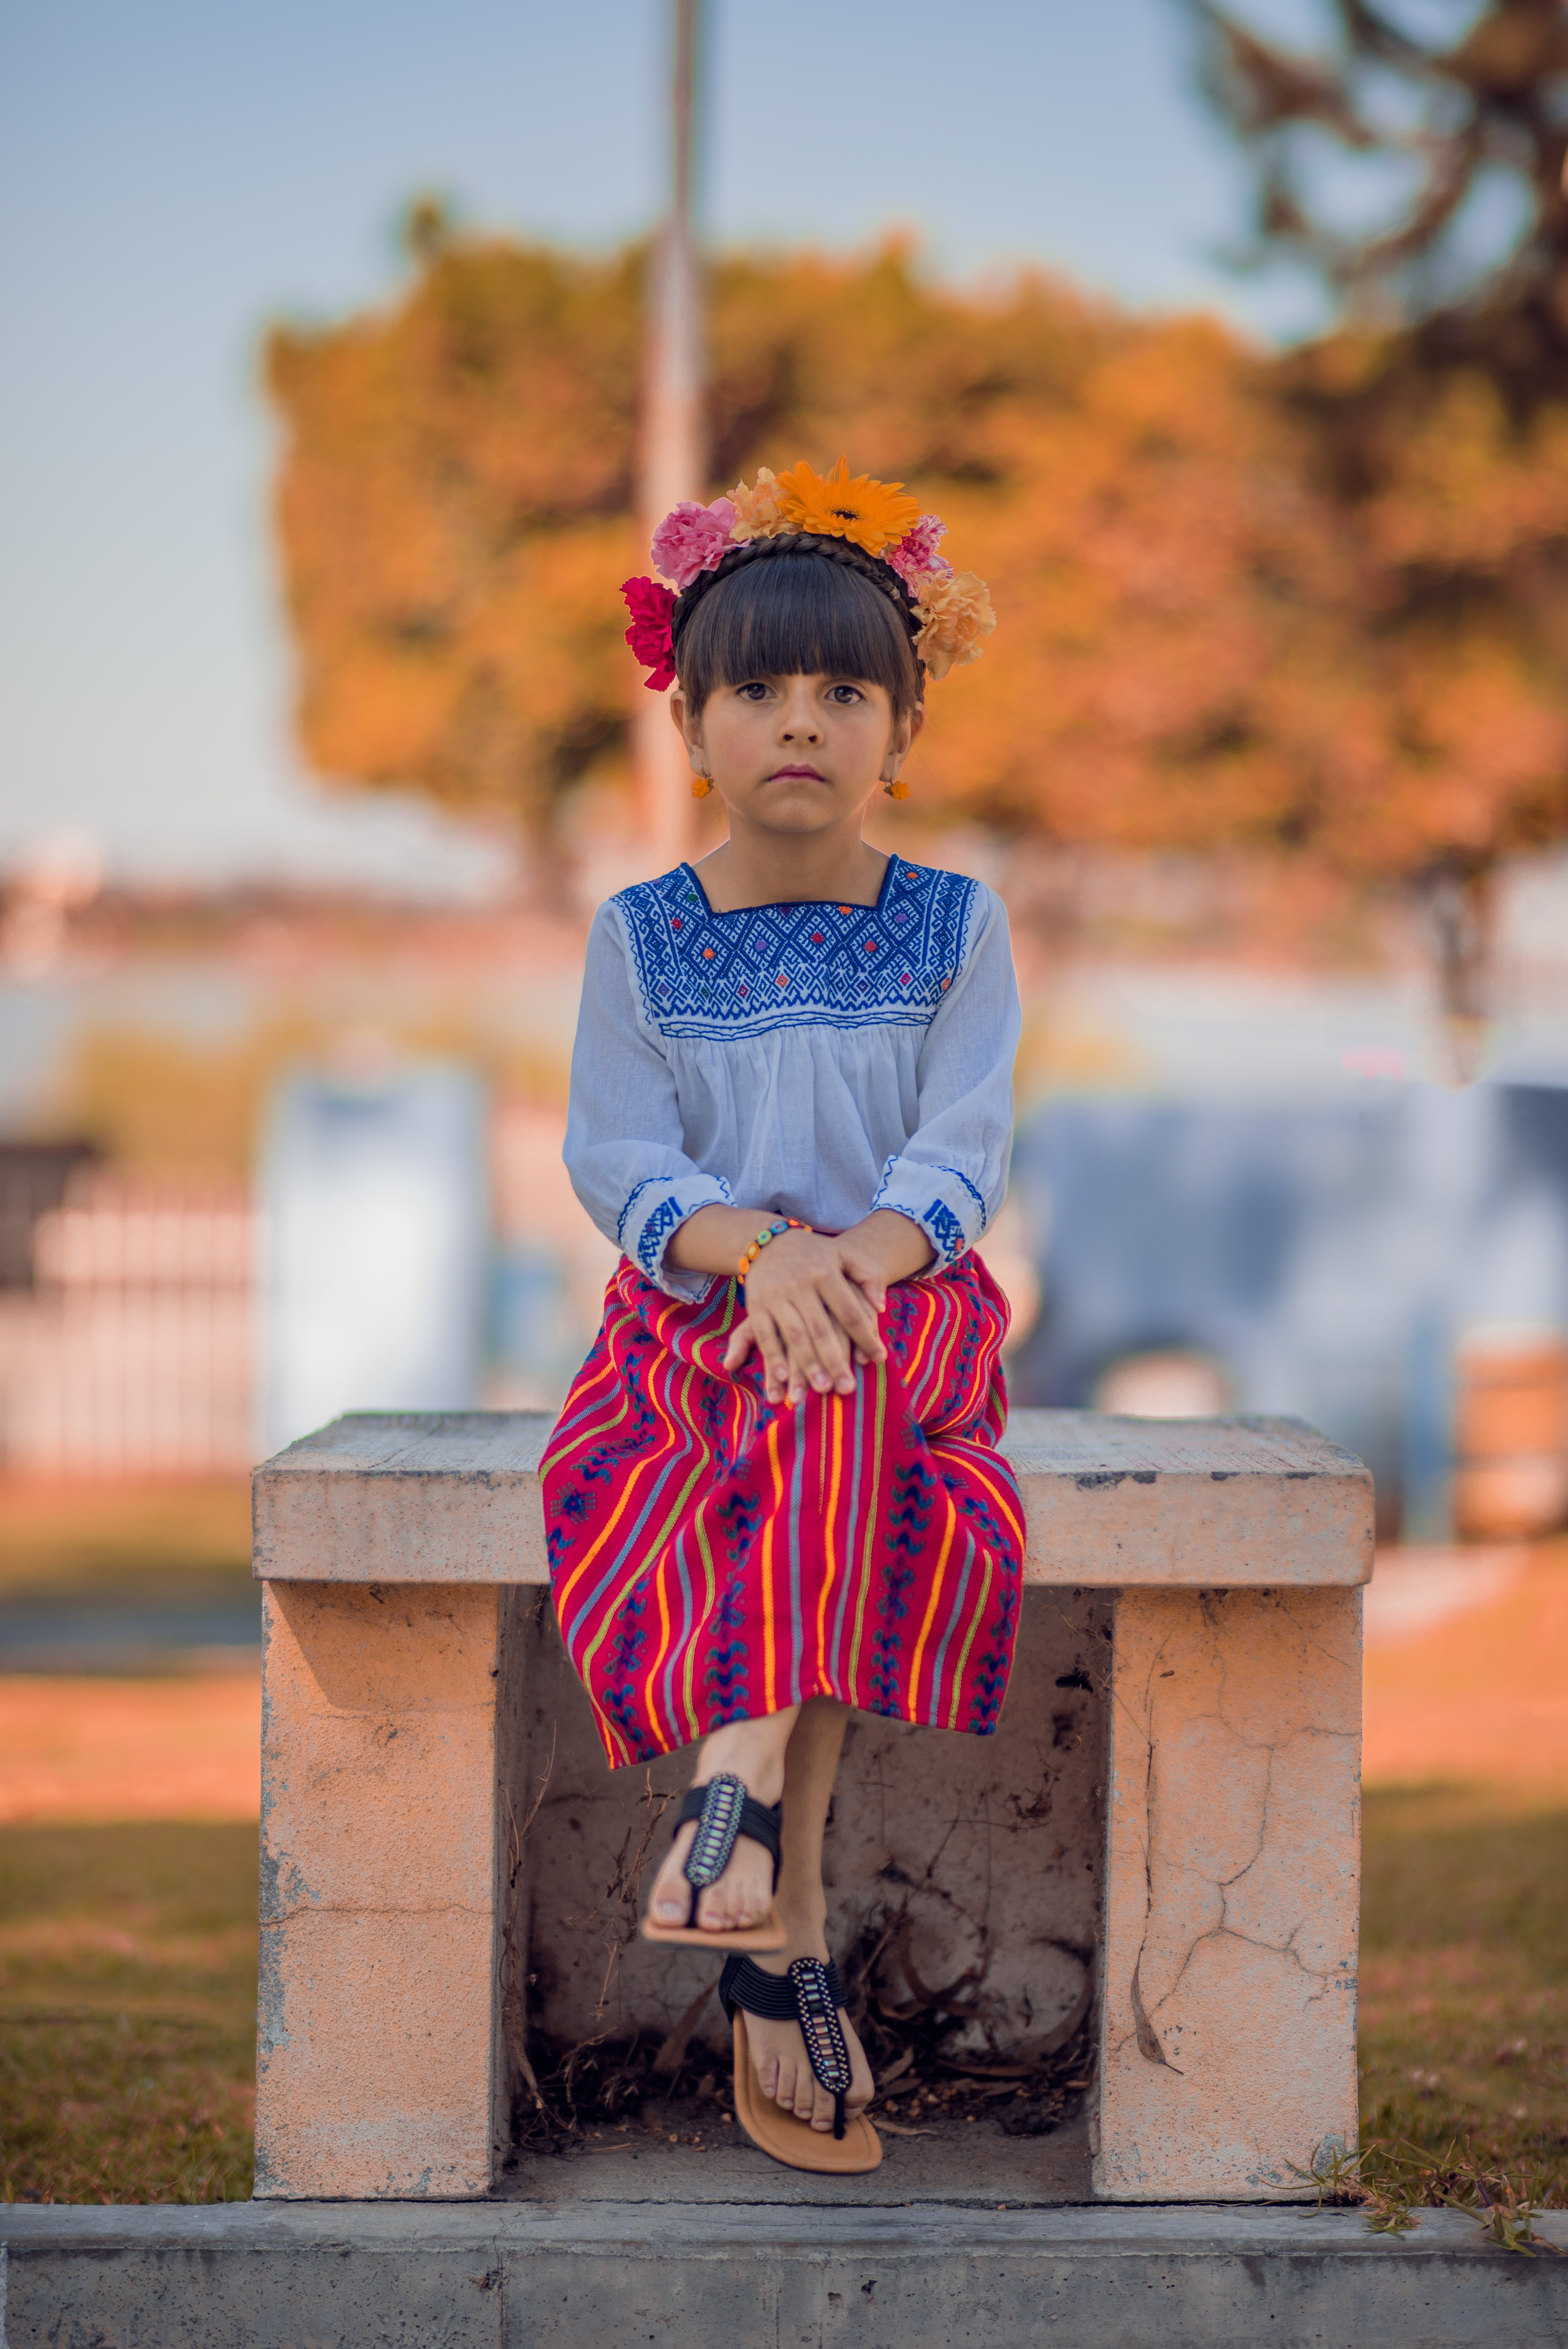 A little girl in a dress and a flower headband sitting on a concrete bench